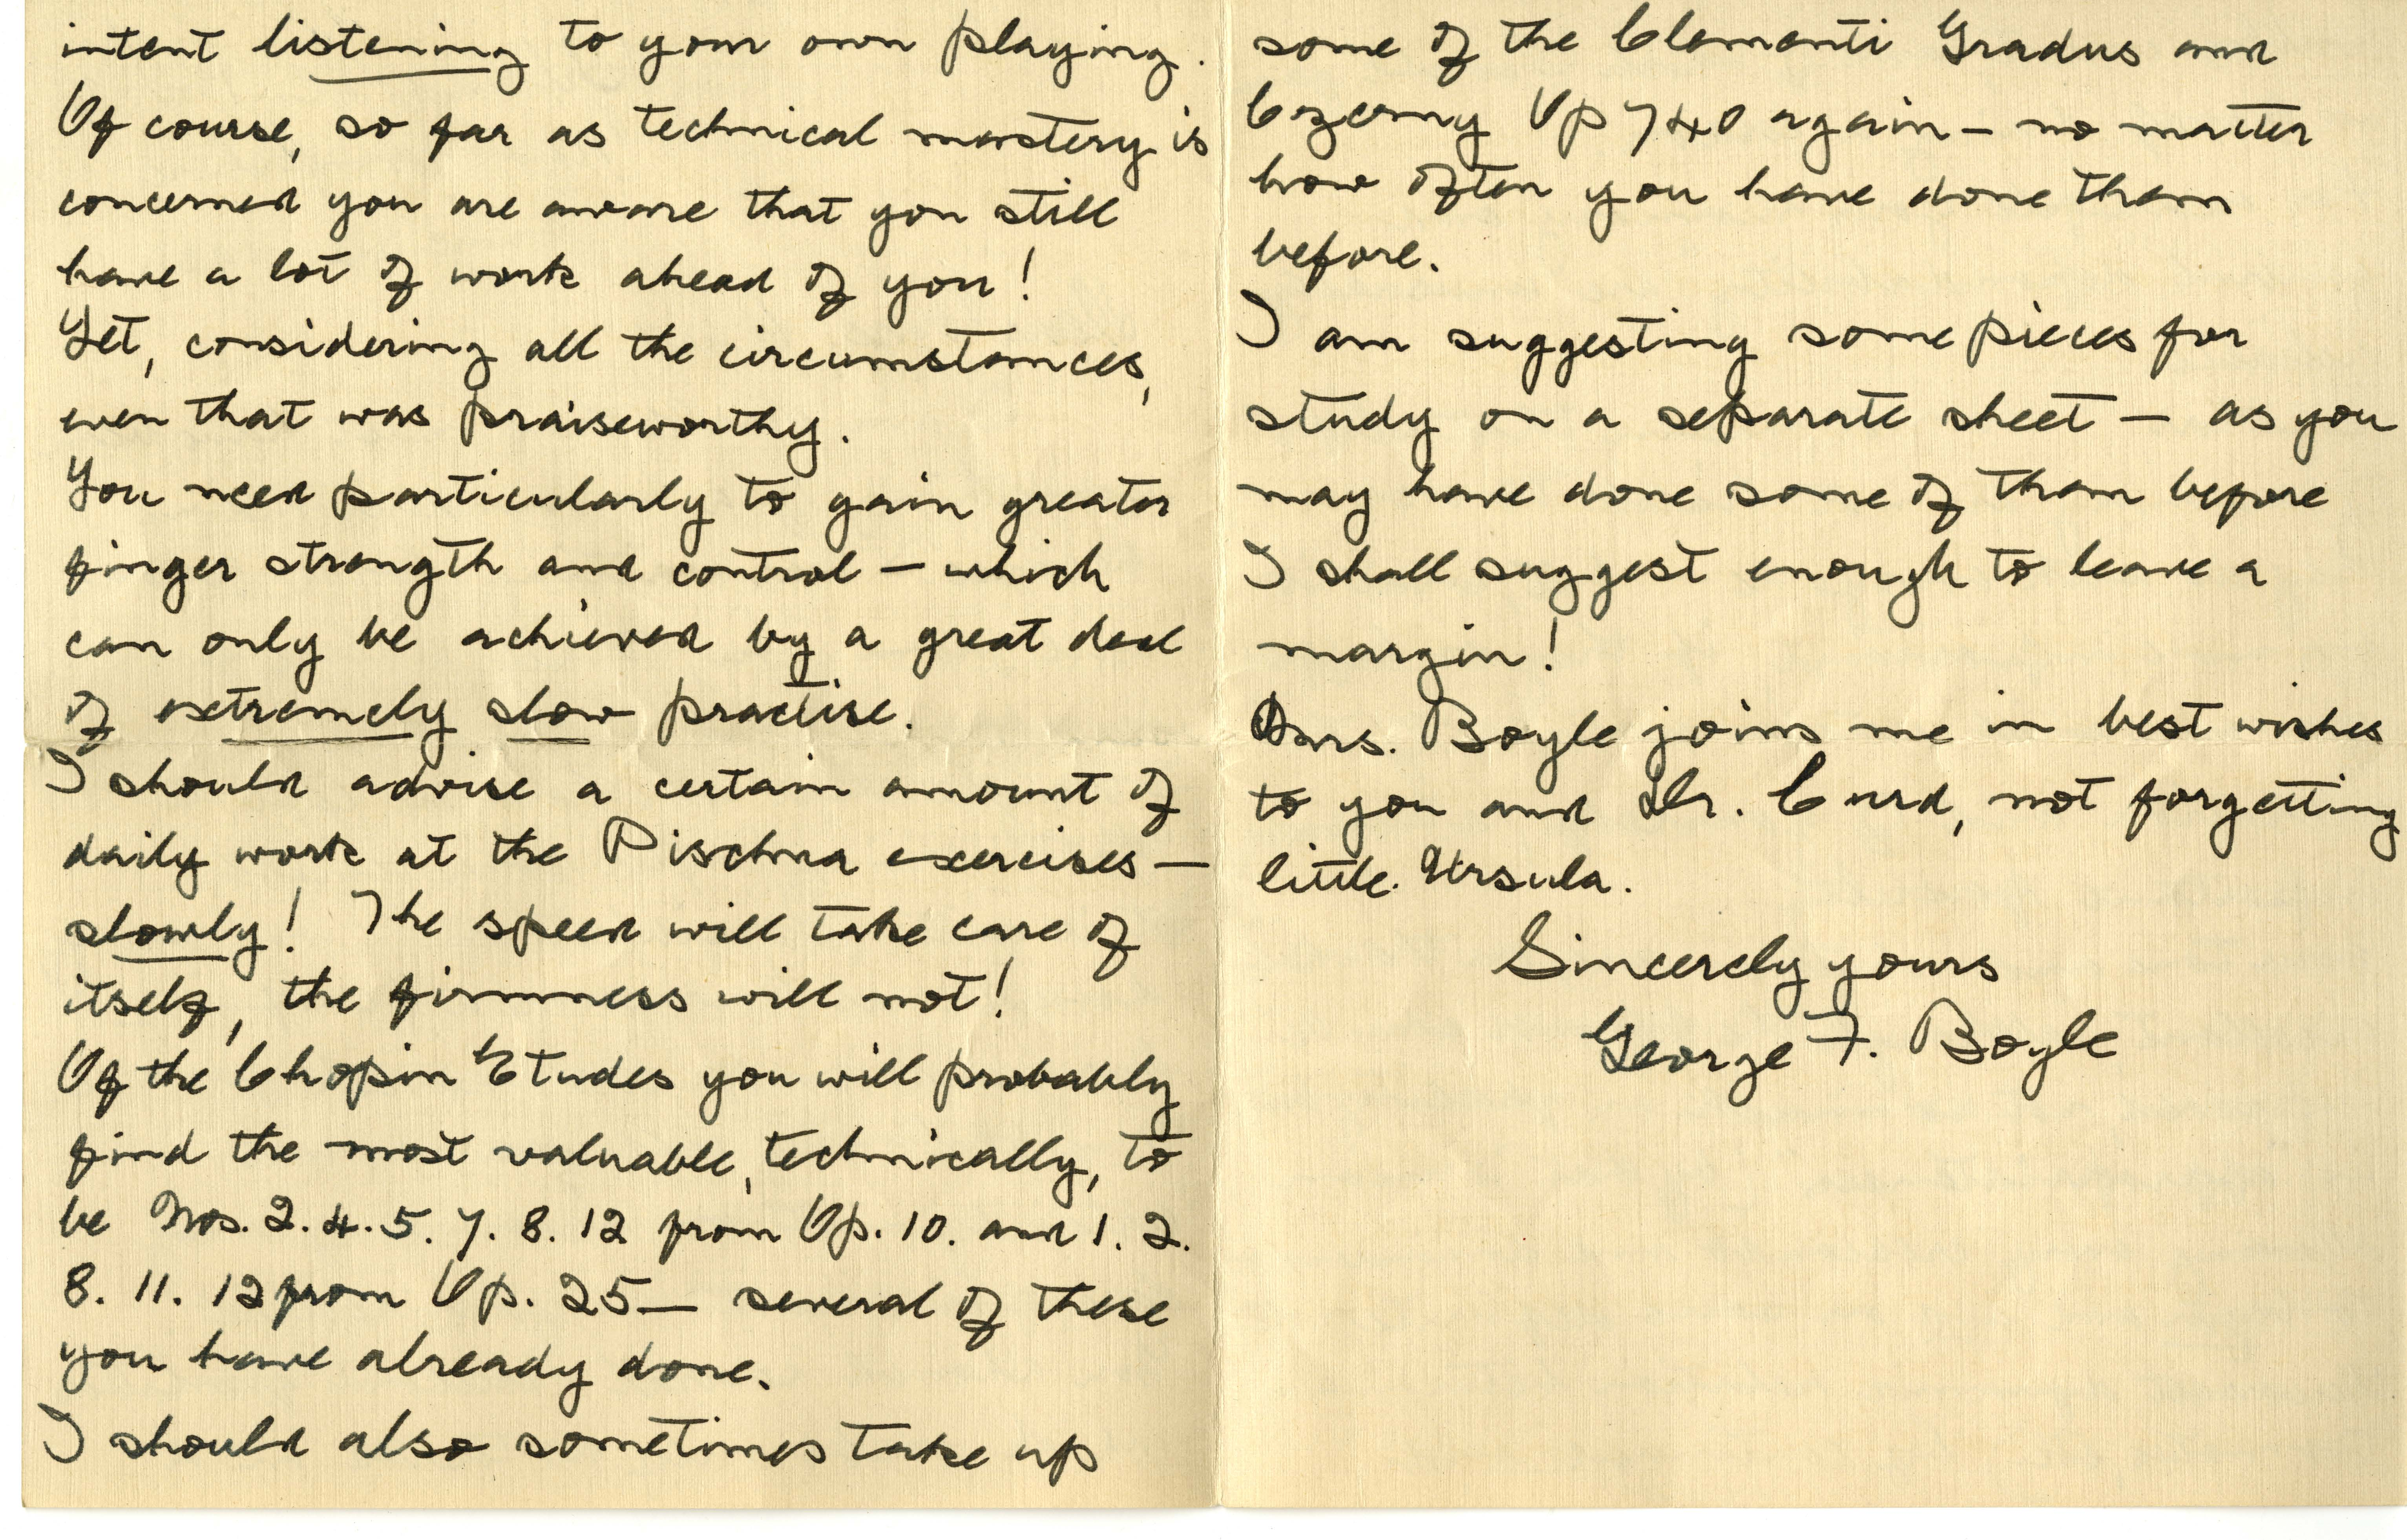 Page 2, letter from Curd's piano teacher, George Boyle, 1932. From the Ursula Curd Scrapbook 1910-1976